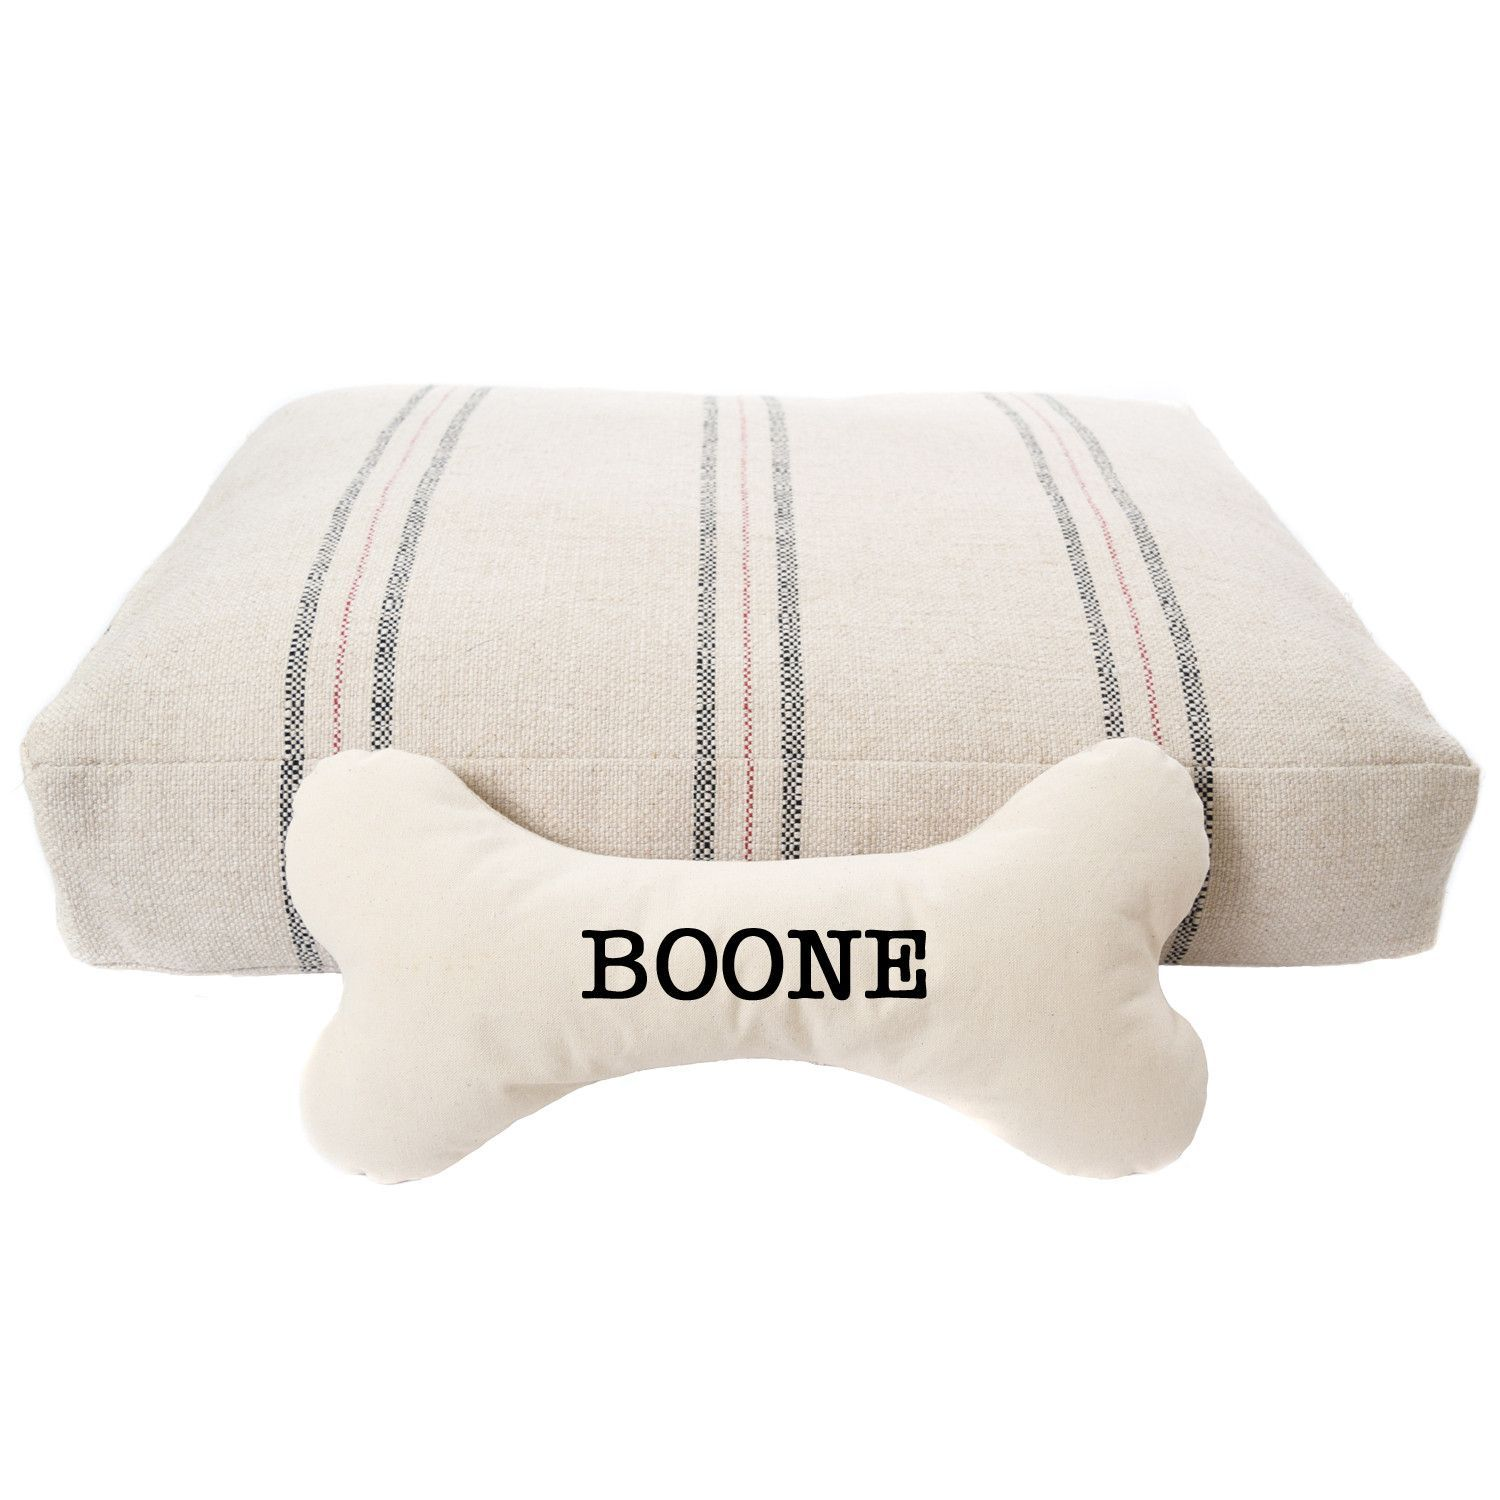 31860d8b90ca Debuting our Striped French Grain Sack Dog Bed with Personalized Bone Pillow  by A Southern Bucket. www.asouthernbucket.com.